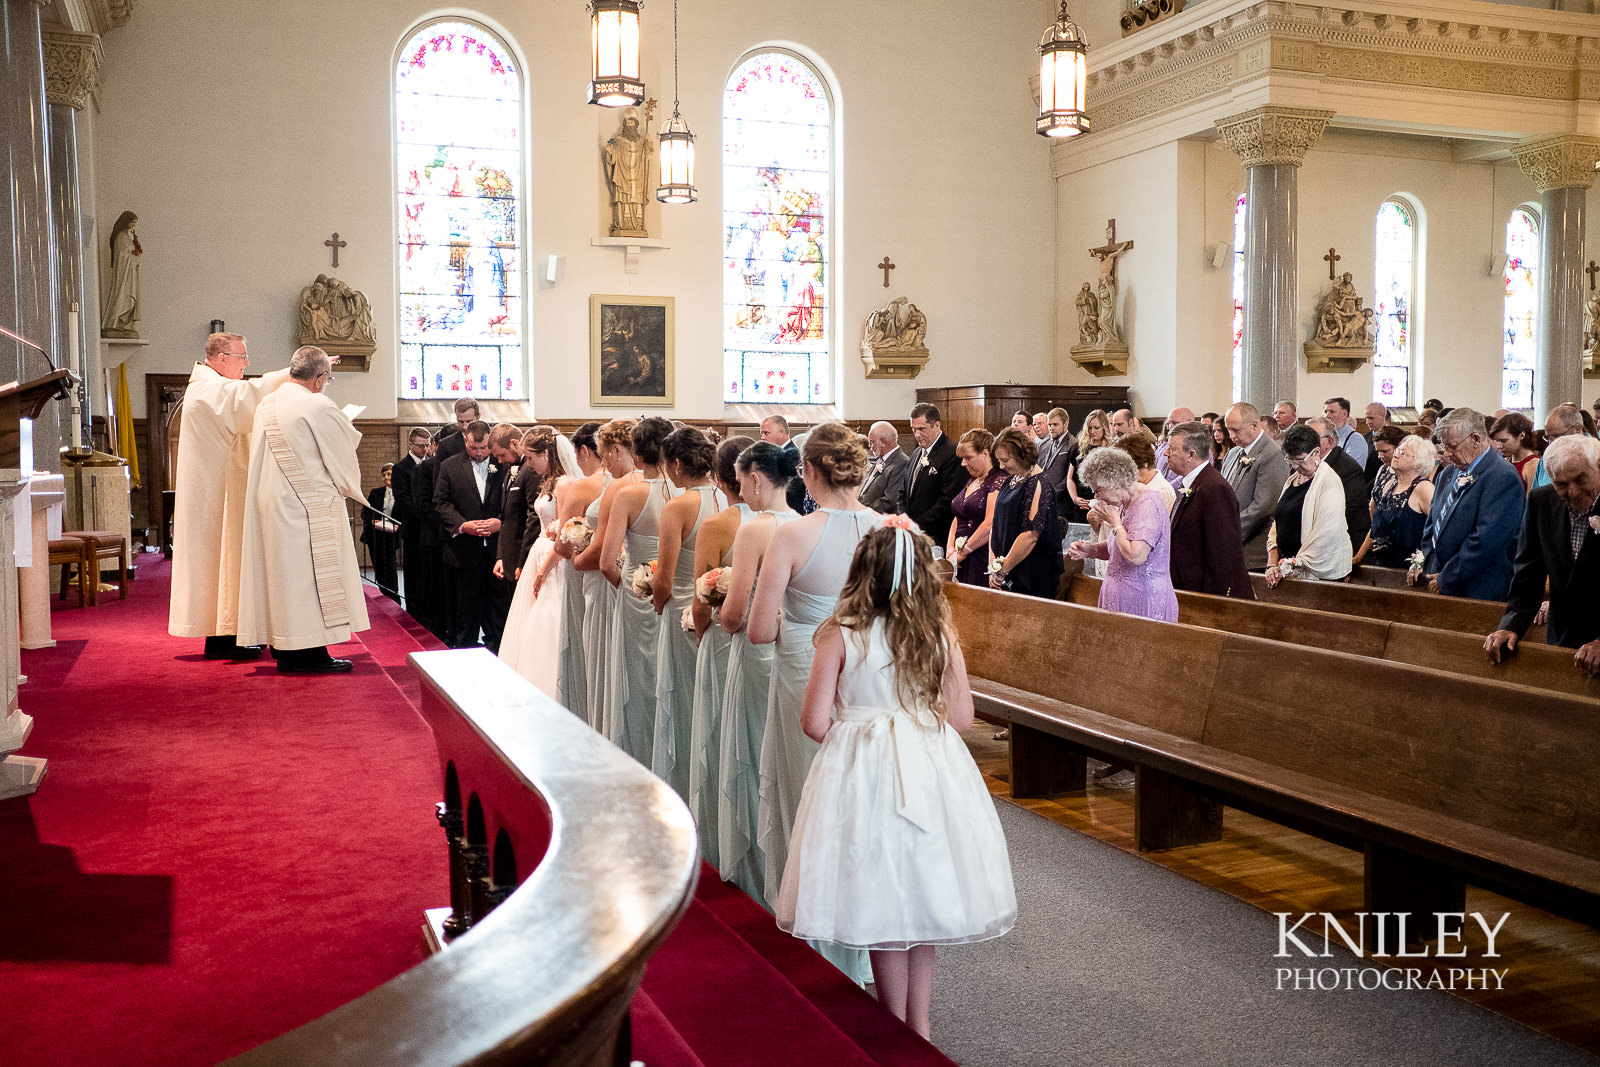 026 - Canandiagua NY wedding pictures - St Marys church ceremony - XT2A2047.jpg